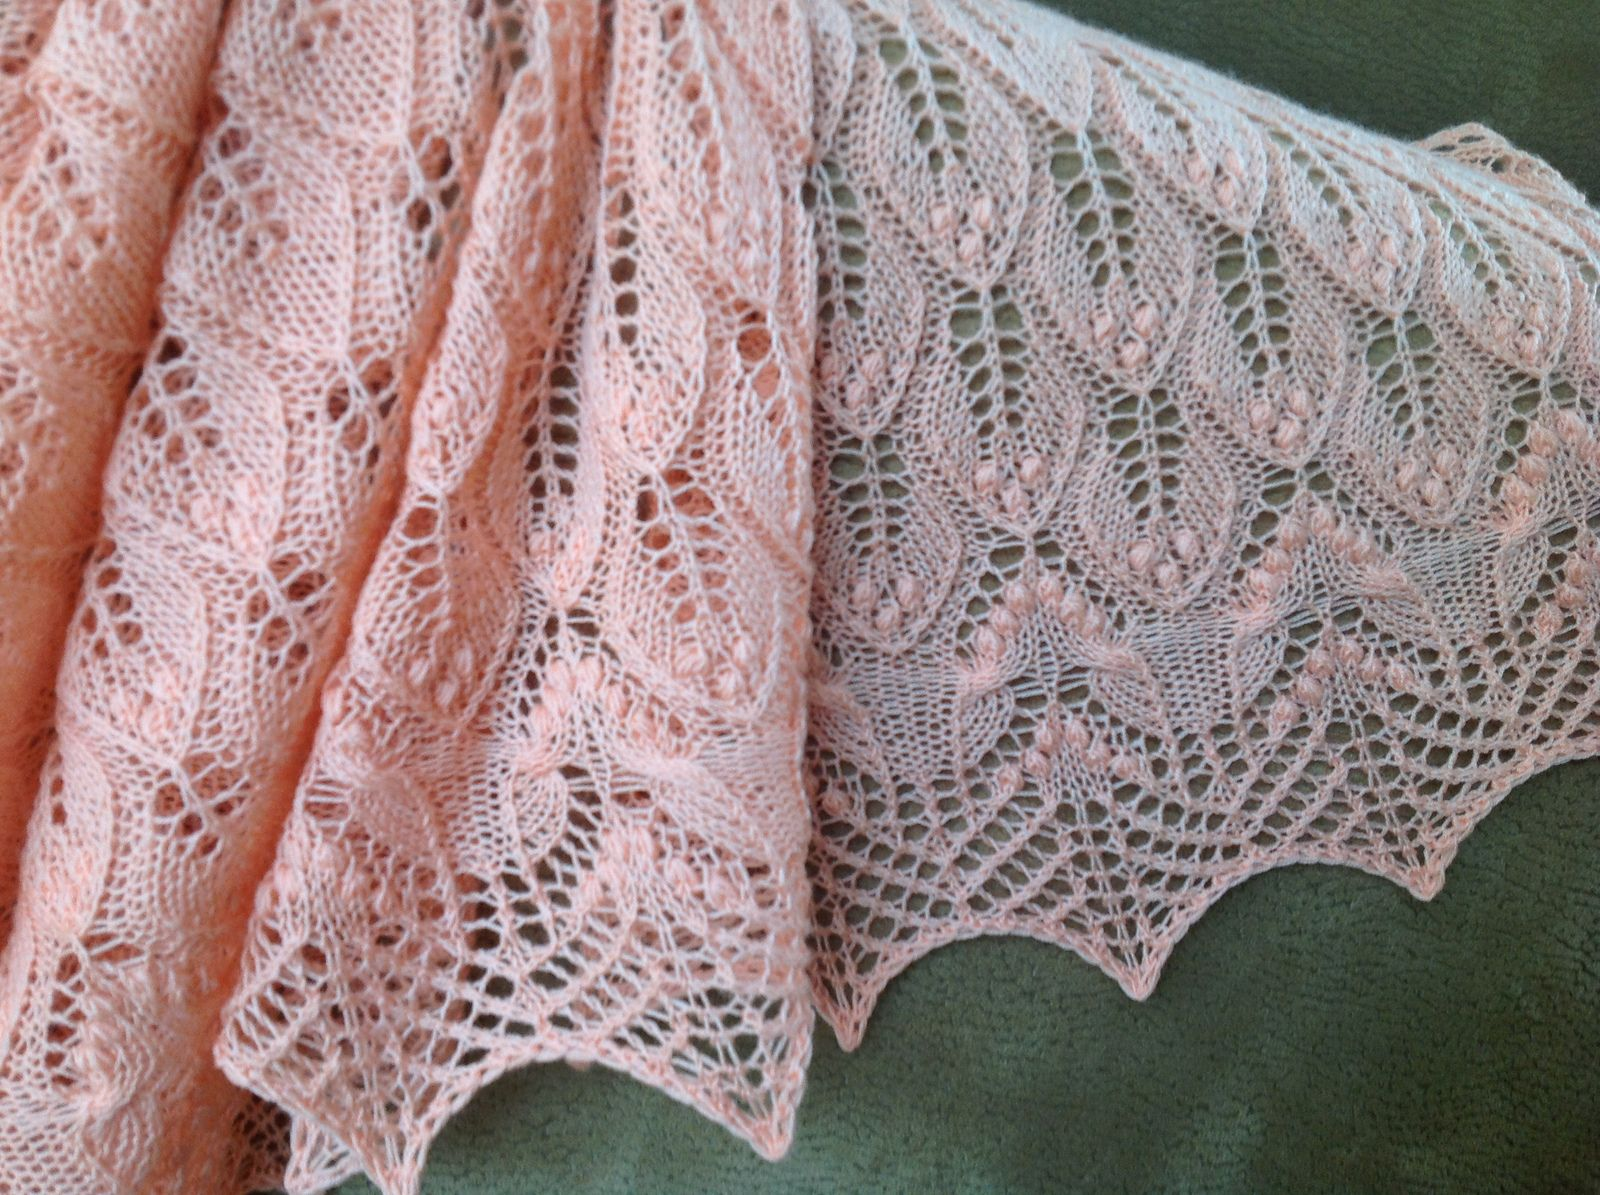 Ravelry wavy leaves and butterflies shawl pattern by athanasia ravelry wavy leaves and butterflies shawl pattern by athanasia andritsou bankloansurffo Images